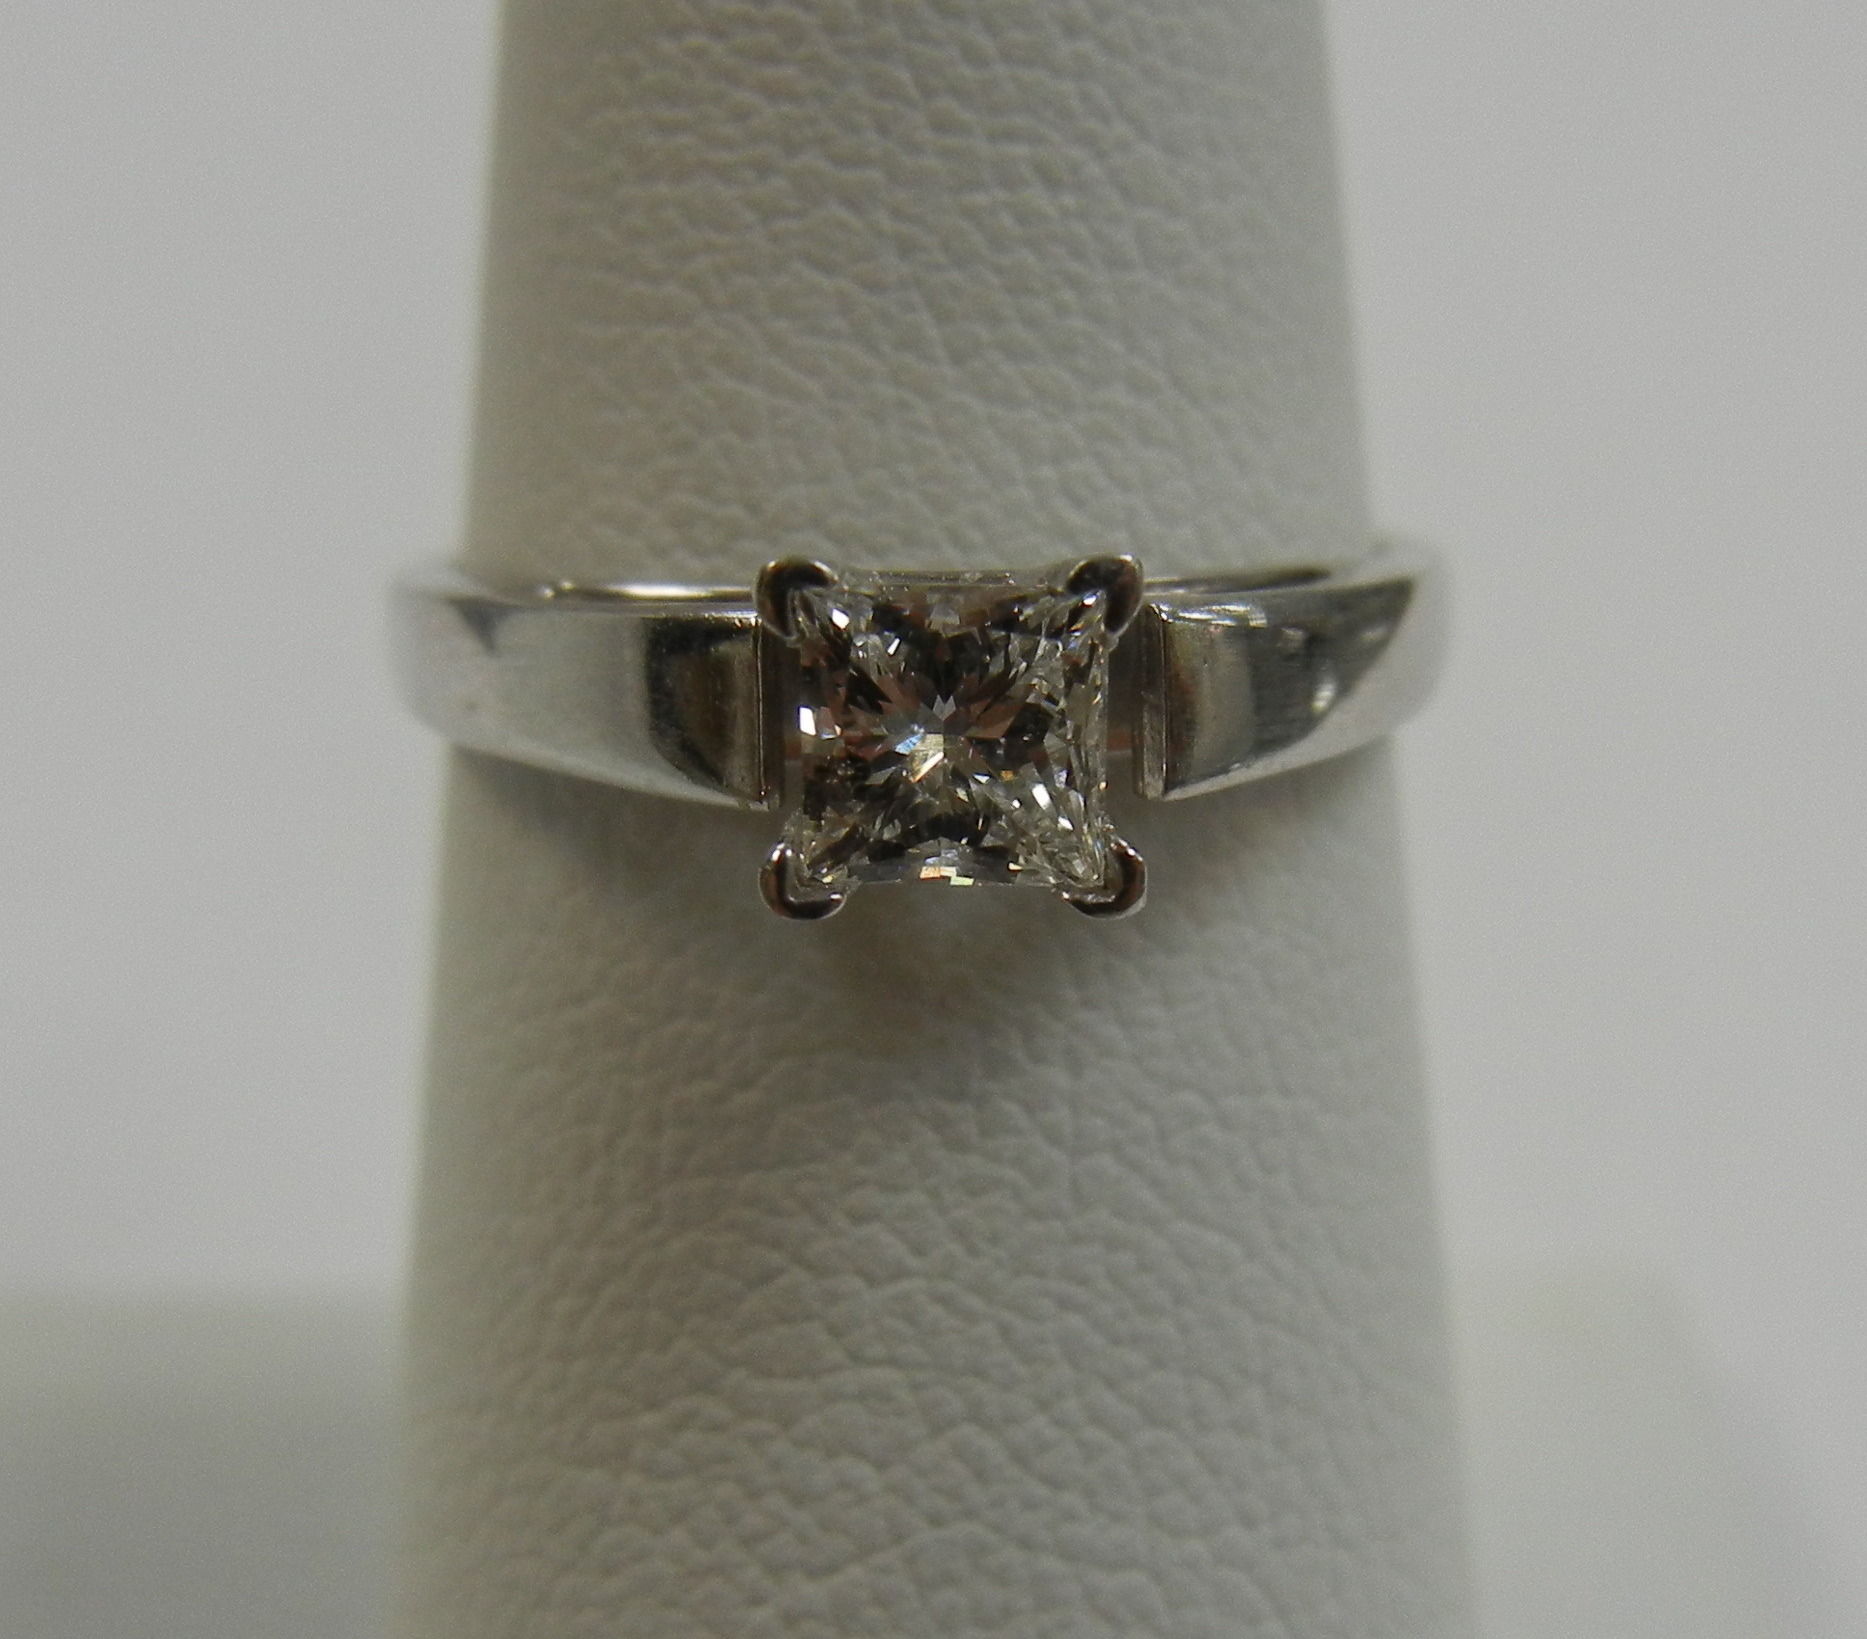 WHITE GOLD 14KT  1.90 DWT  WOMAN'S RING  Size 7.5  SOLITAIRE PRINCESS CUT 1/3 CT DIAMOND